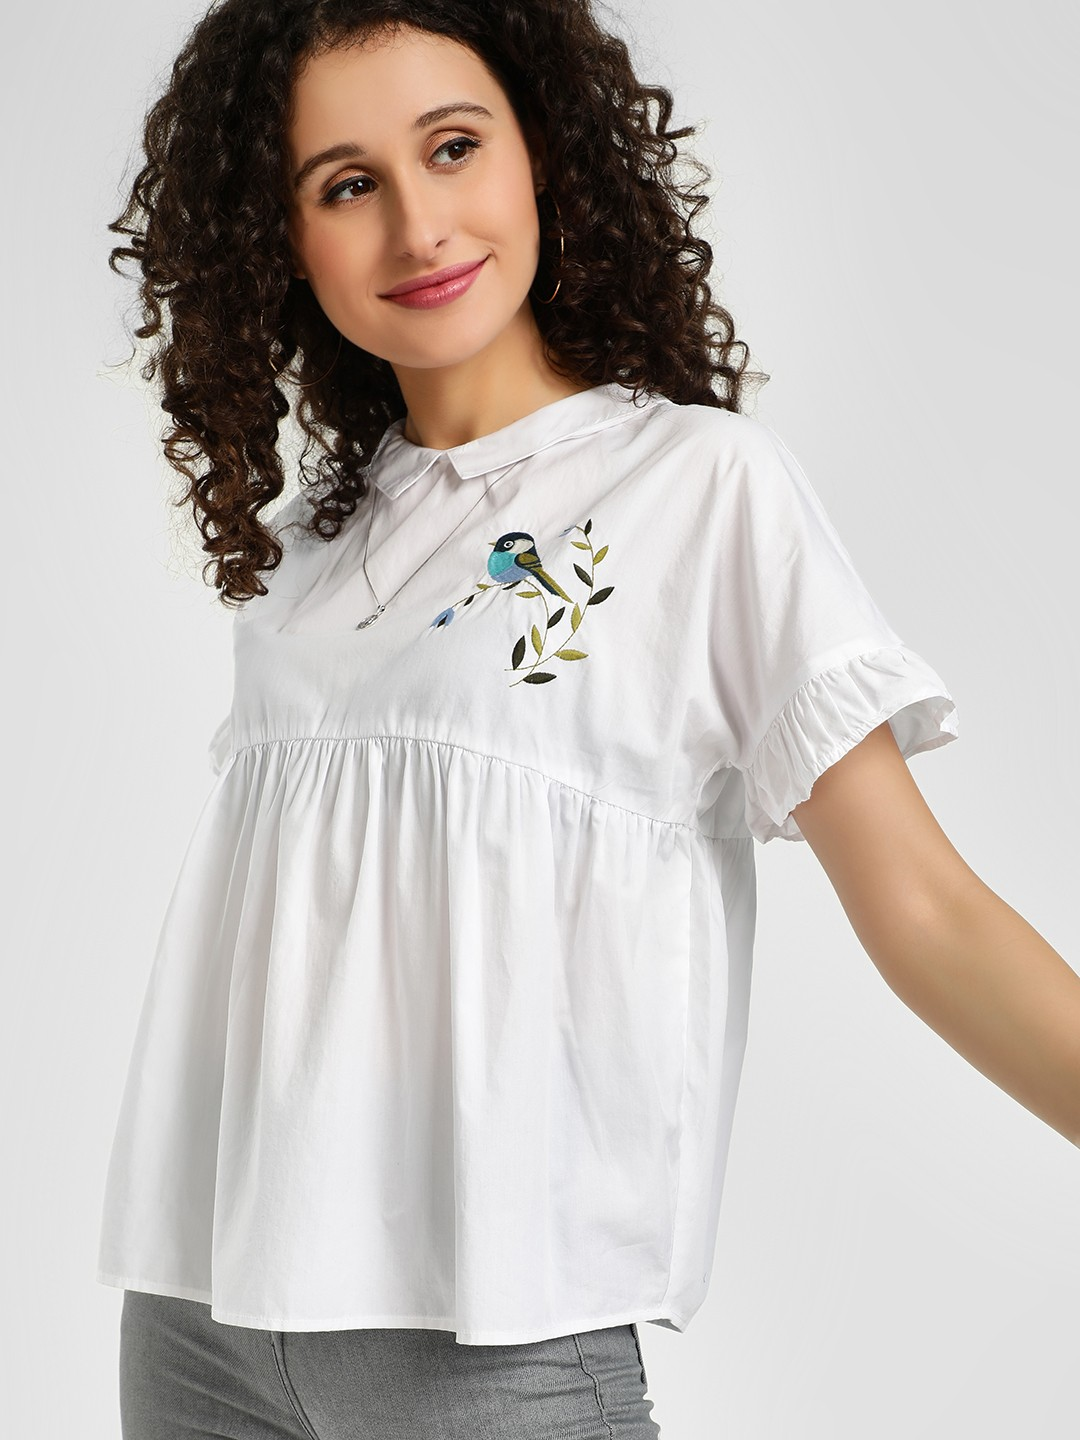 Evah London White Bird Embroidered Top 1